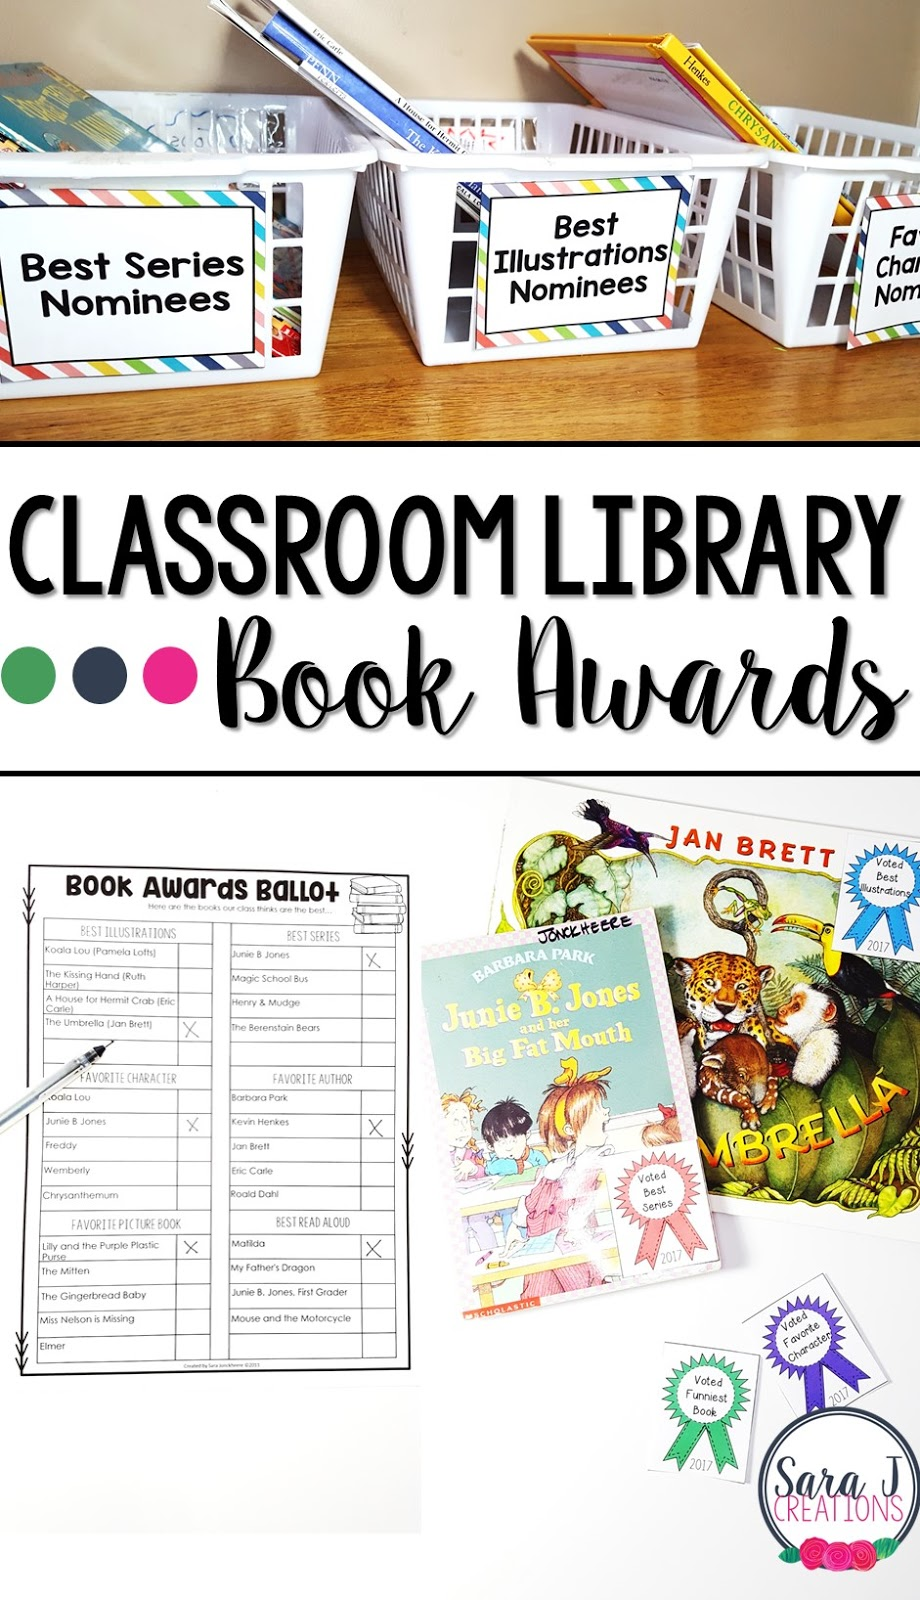 Great idea for using your classroom library to create book awards for some of your favorite books.